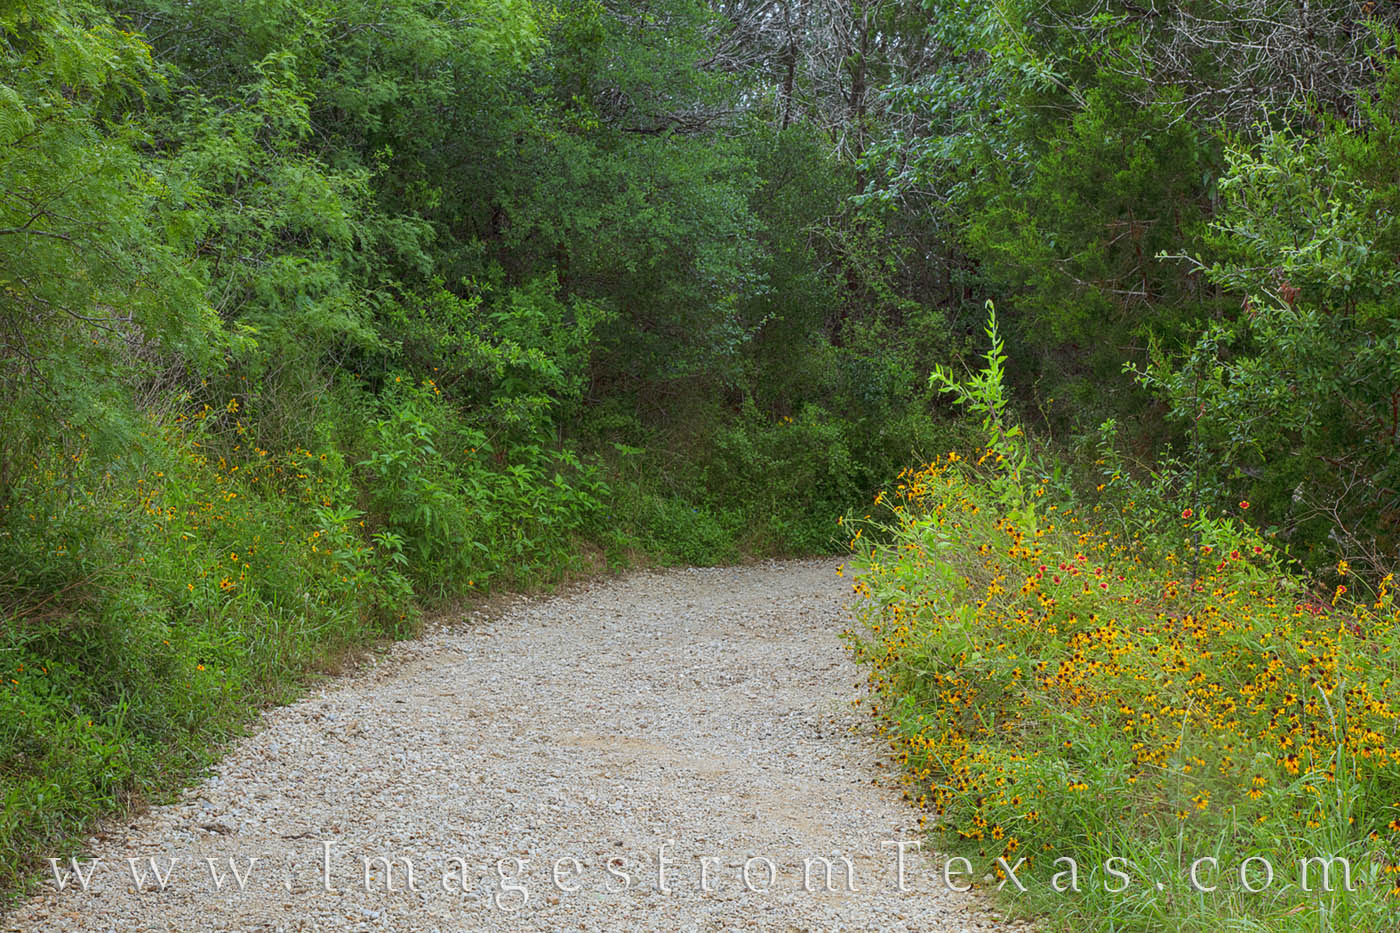 Not far from the parking lot of the Lower Falls area in McKinney Falls State Park, this trail was lined with black-eyed susans...